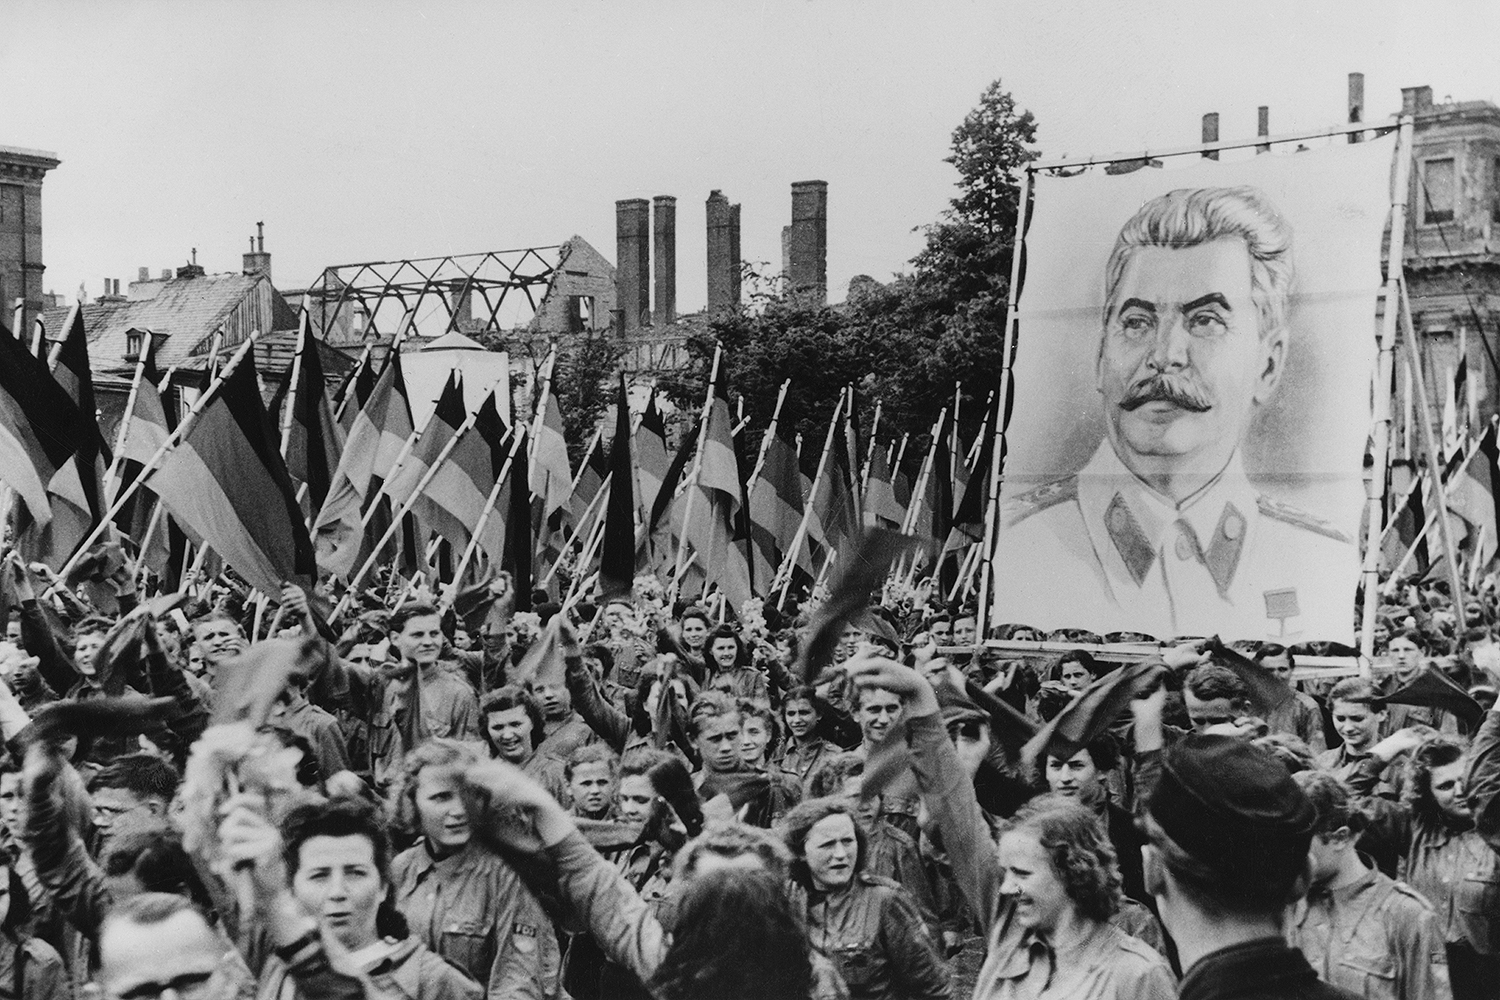 Young people carry portraits of Communist leader Joseph Stalin during a Soviet-sponsored youth rally in Berlin.